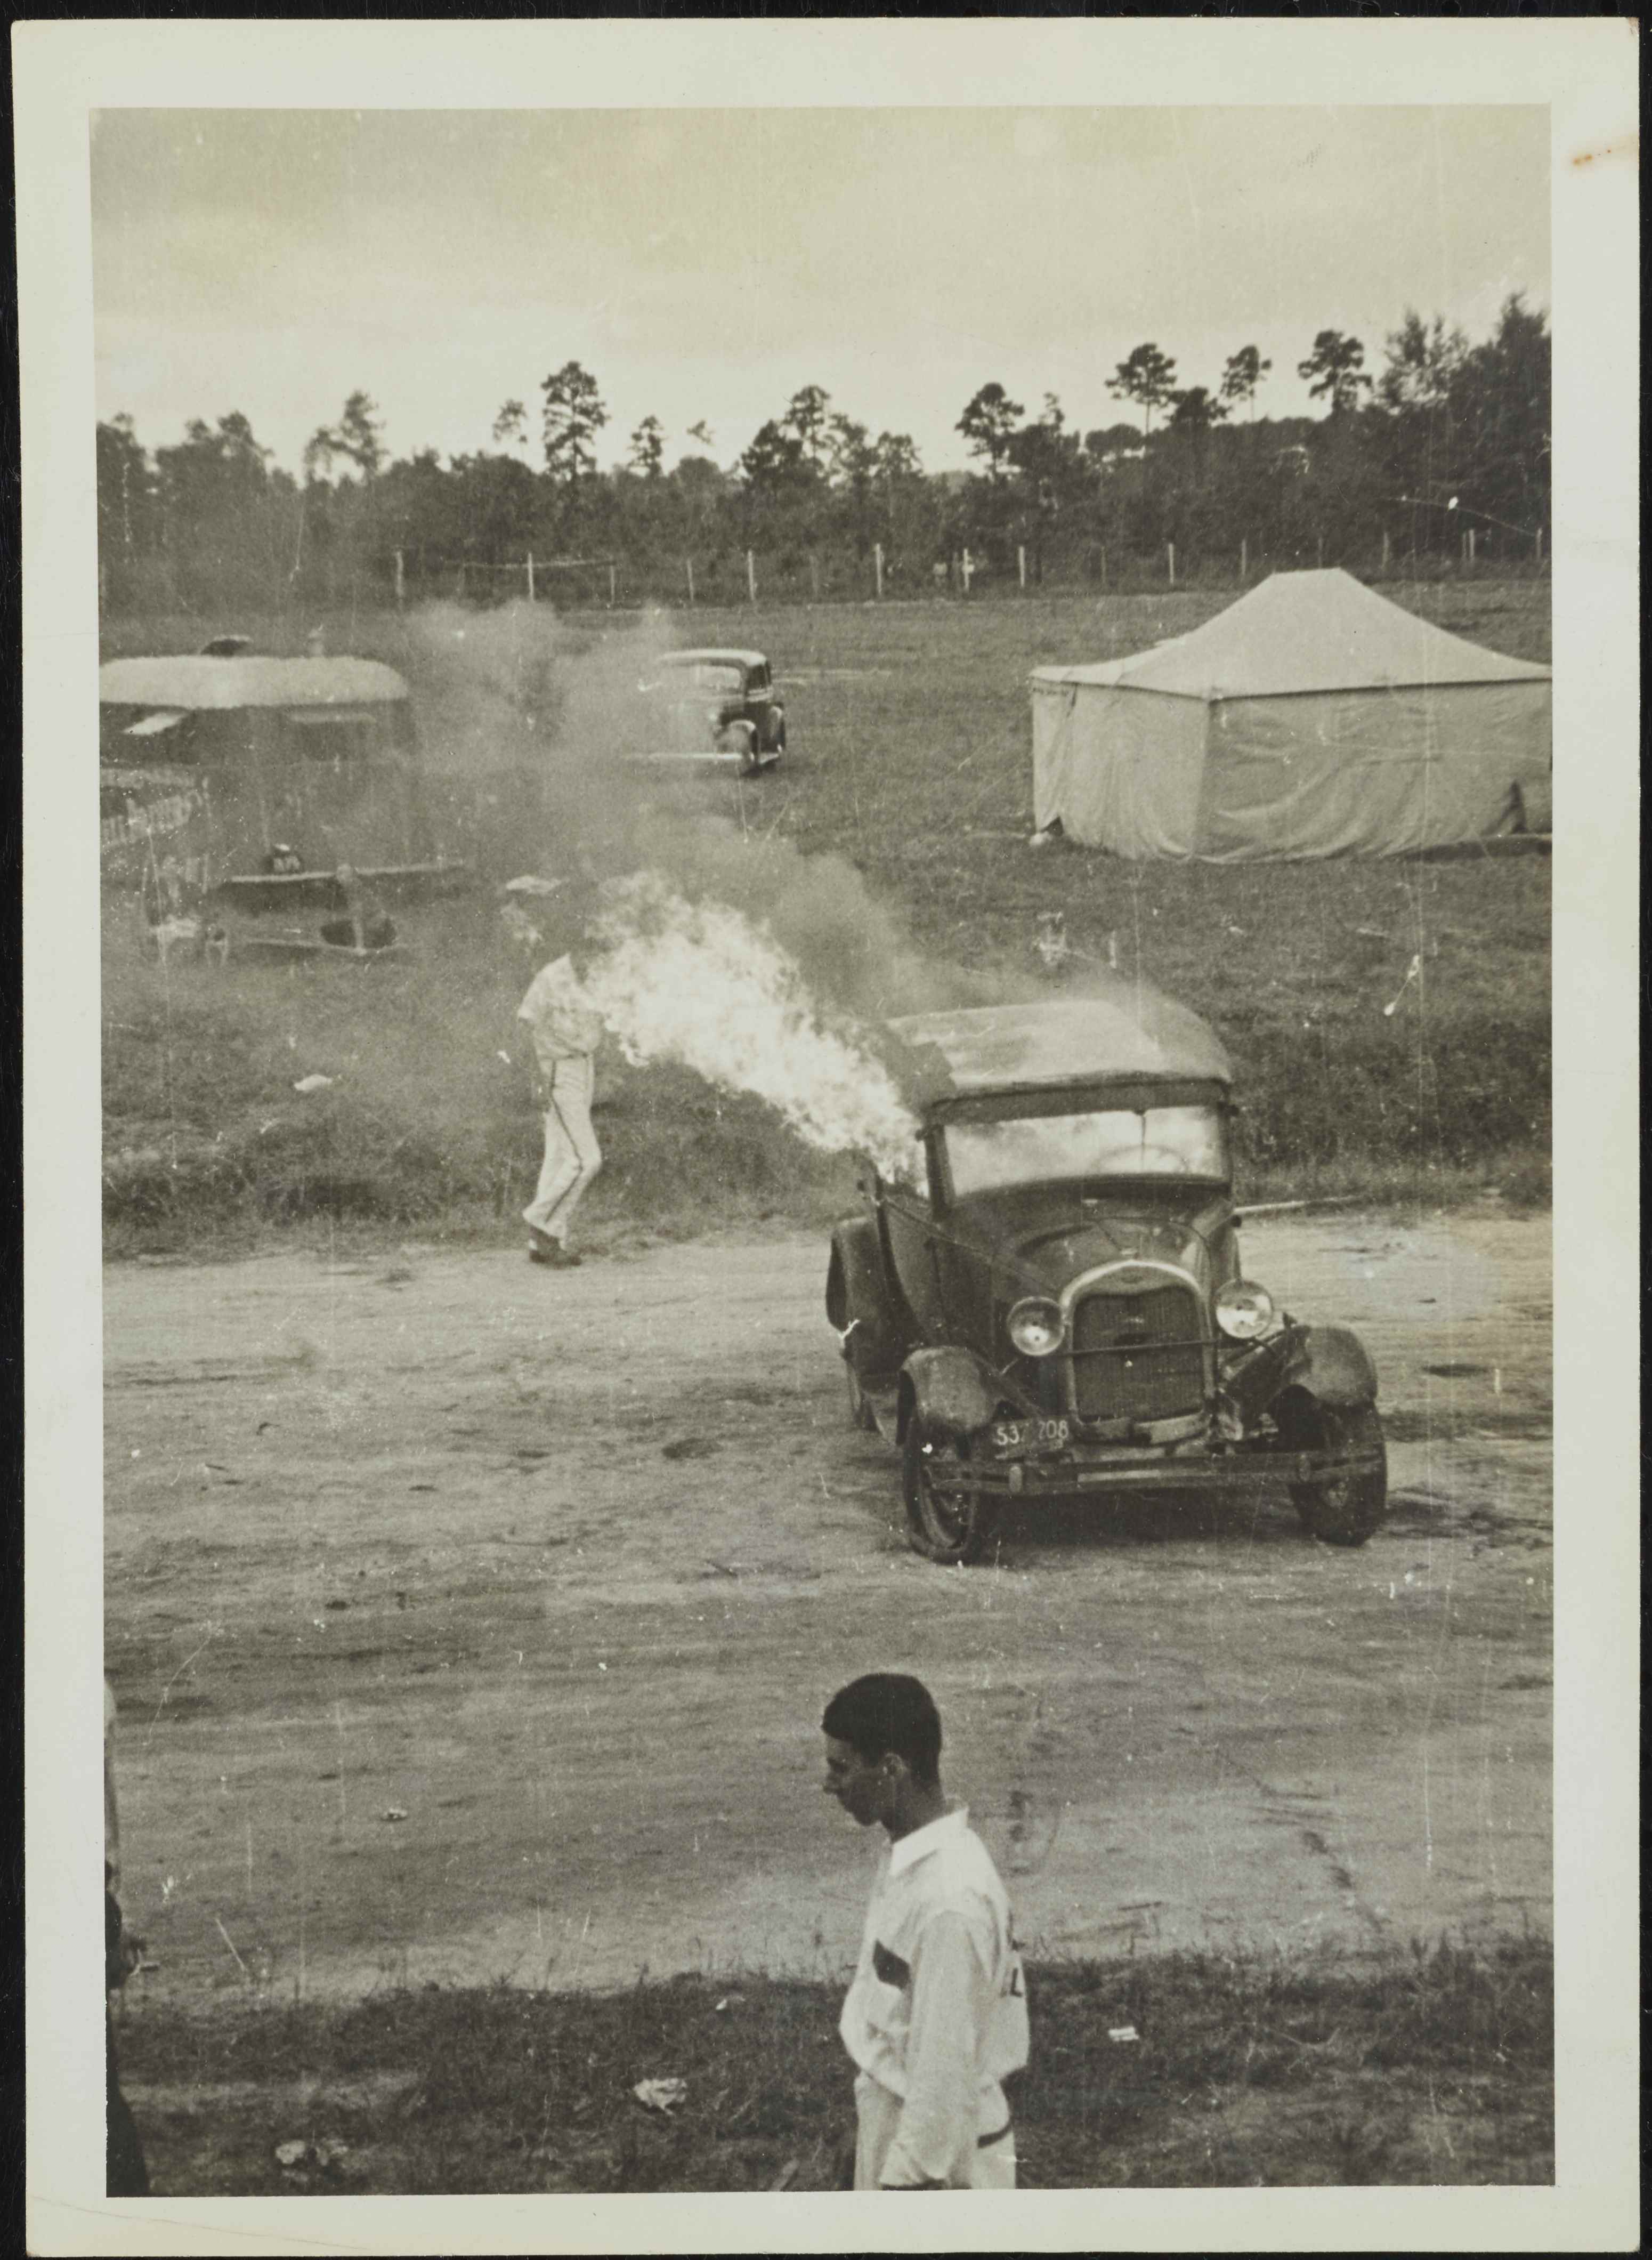 More Photos by M.S. Brown — Hell Drivers and More from the Edgecombe County Public Library